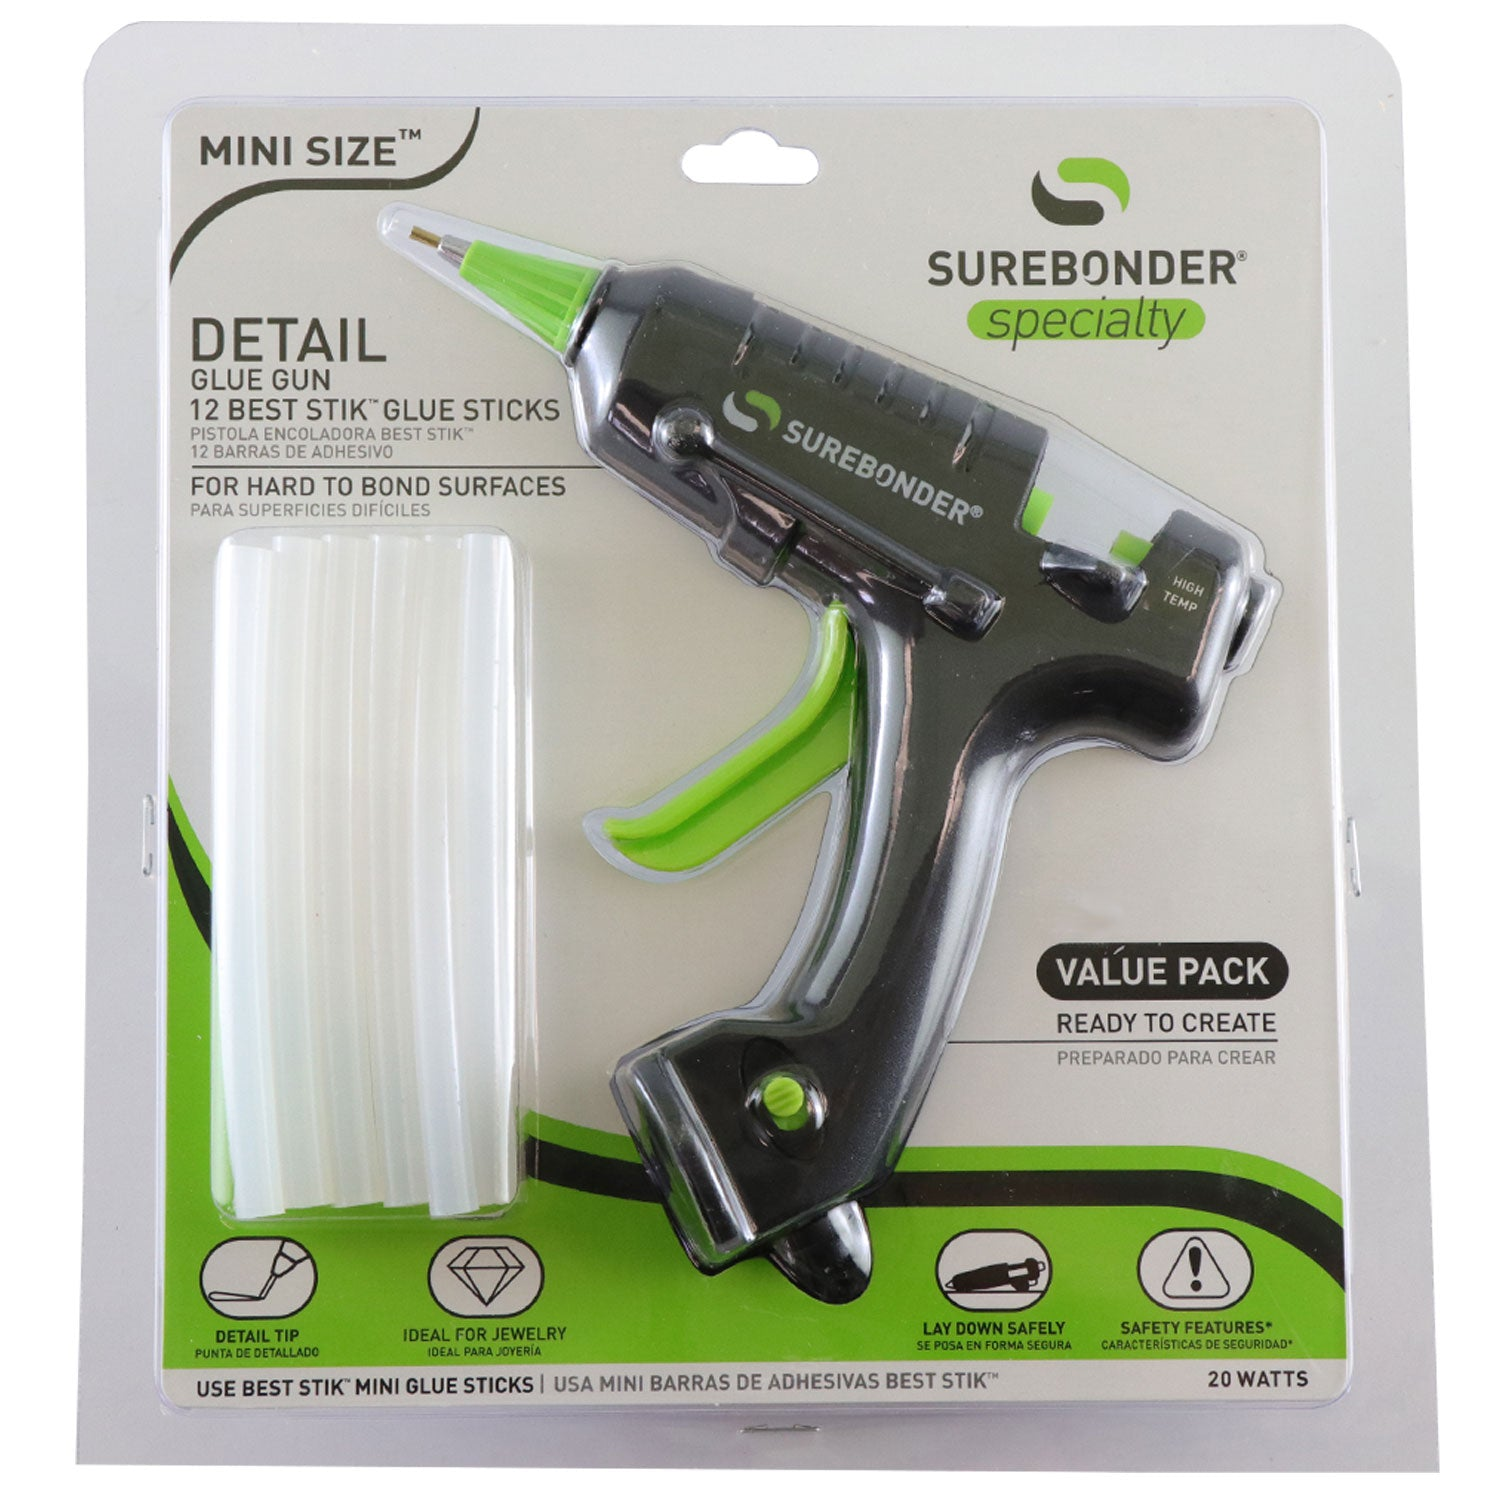 Light Duty Detailer Mini Glue Gun Kit